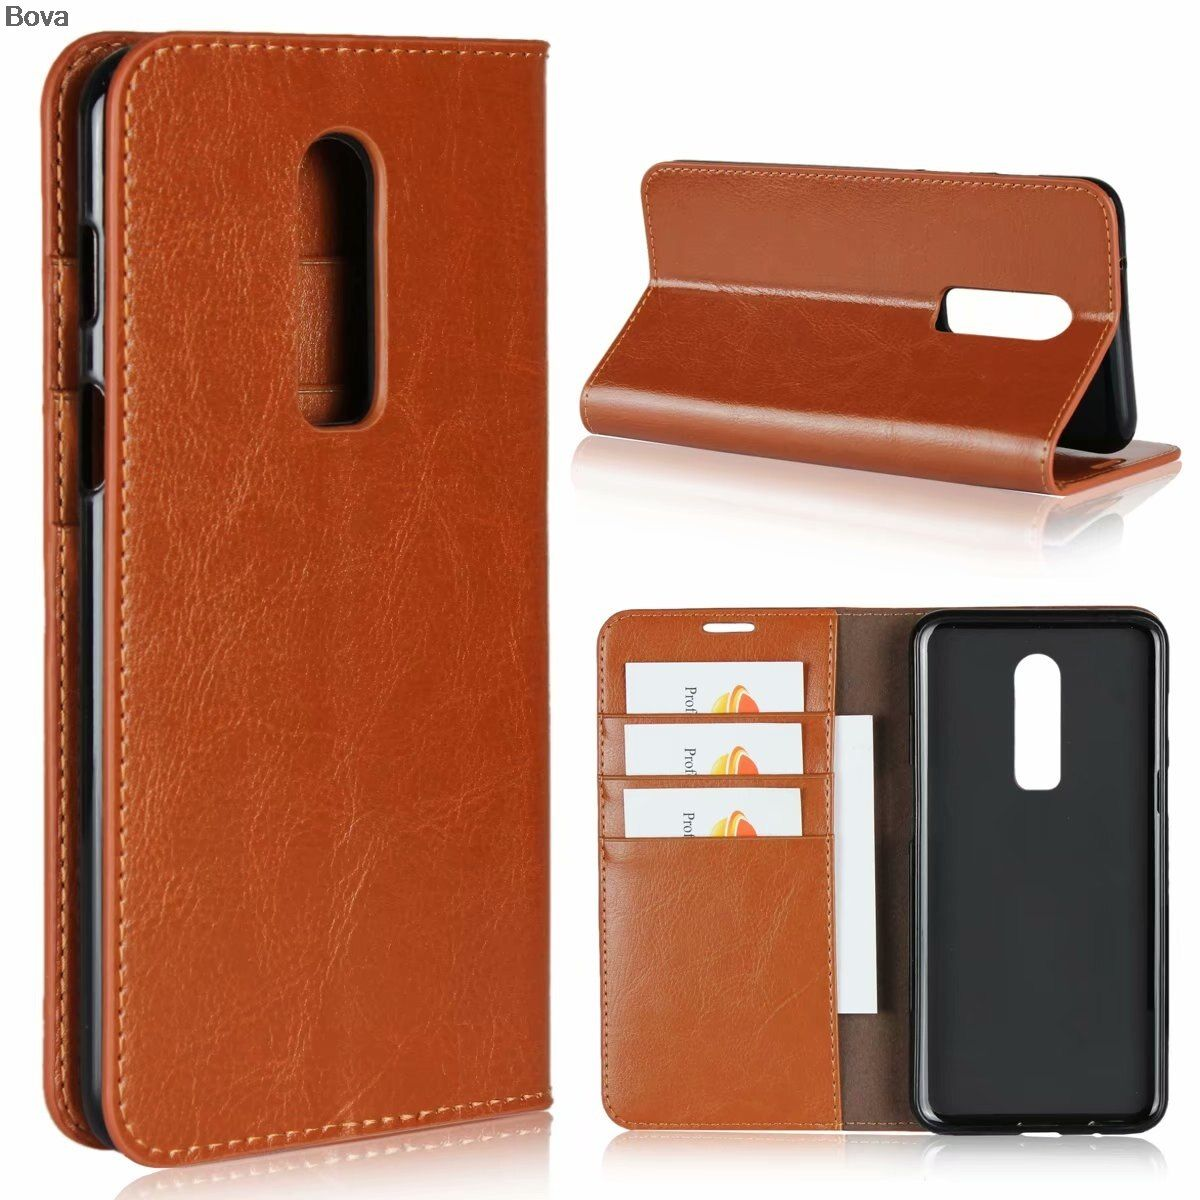 Deluxe Wallet Case For Oneplus 6 1+6 premium leather Case For OnePlus 6 1+6 Flip Protective Cover Bags coque capa fundas